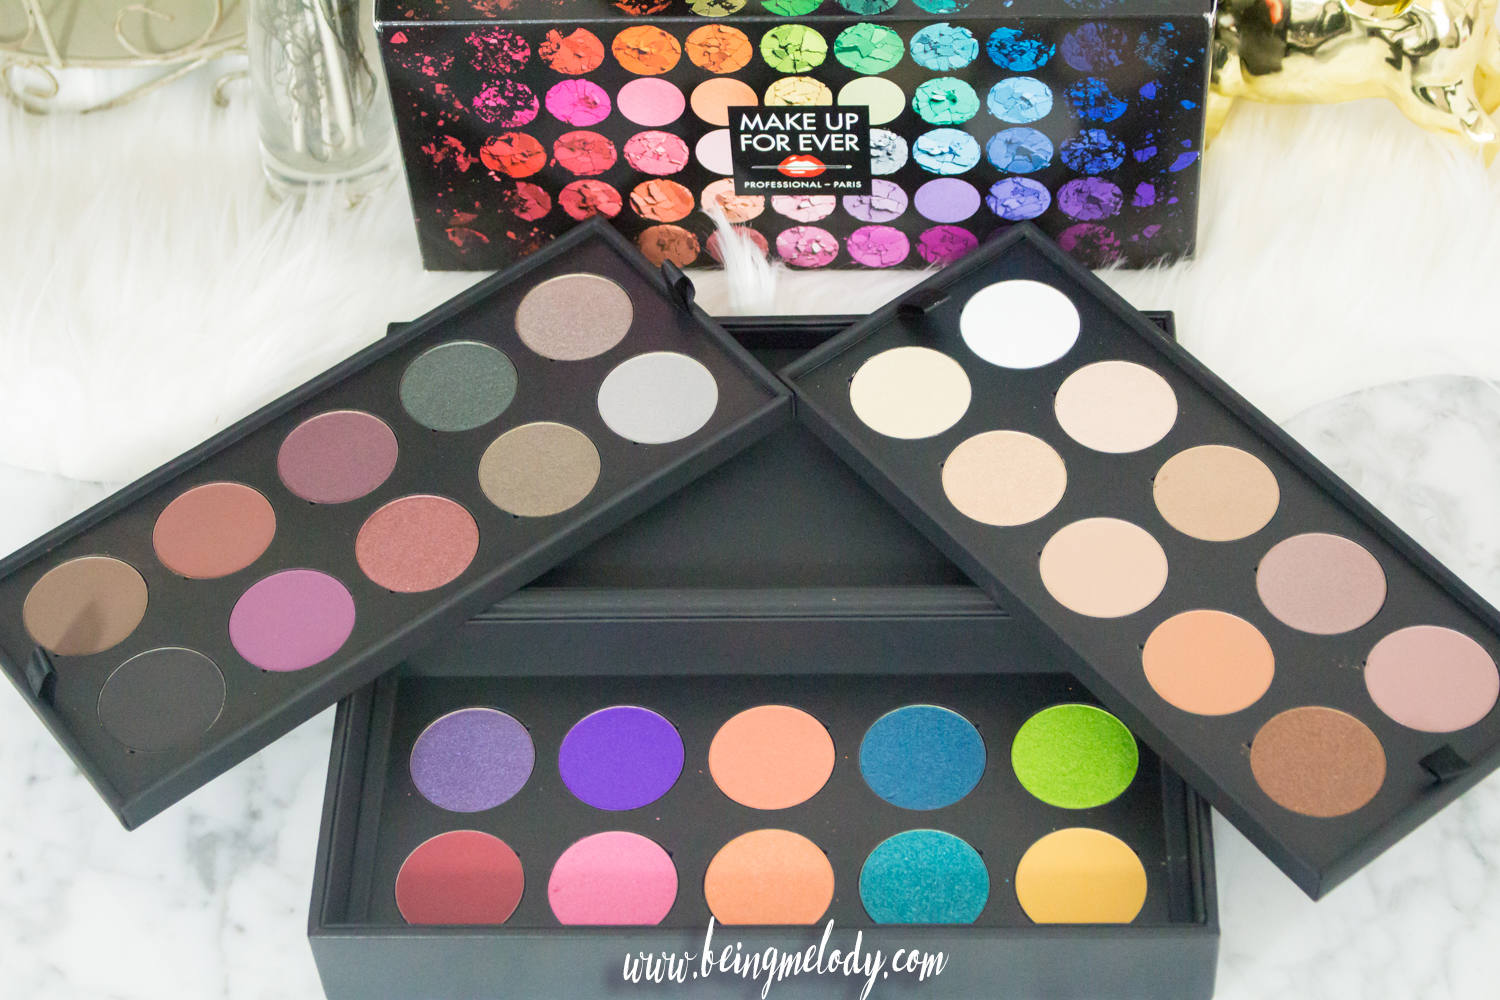 Make Up For Ever Cyber Monday Artist Eyeshadow Palette launches cyber Monday 2015. |www.beingmelody.com|